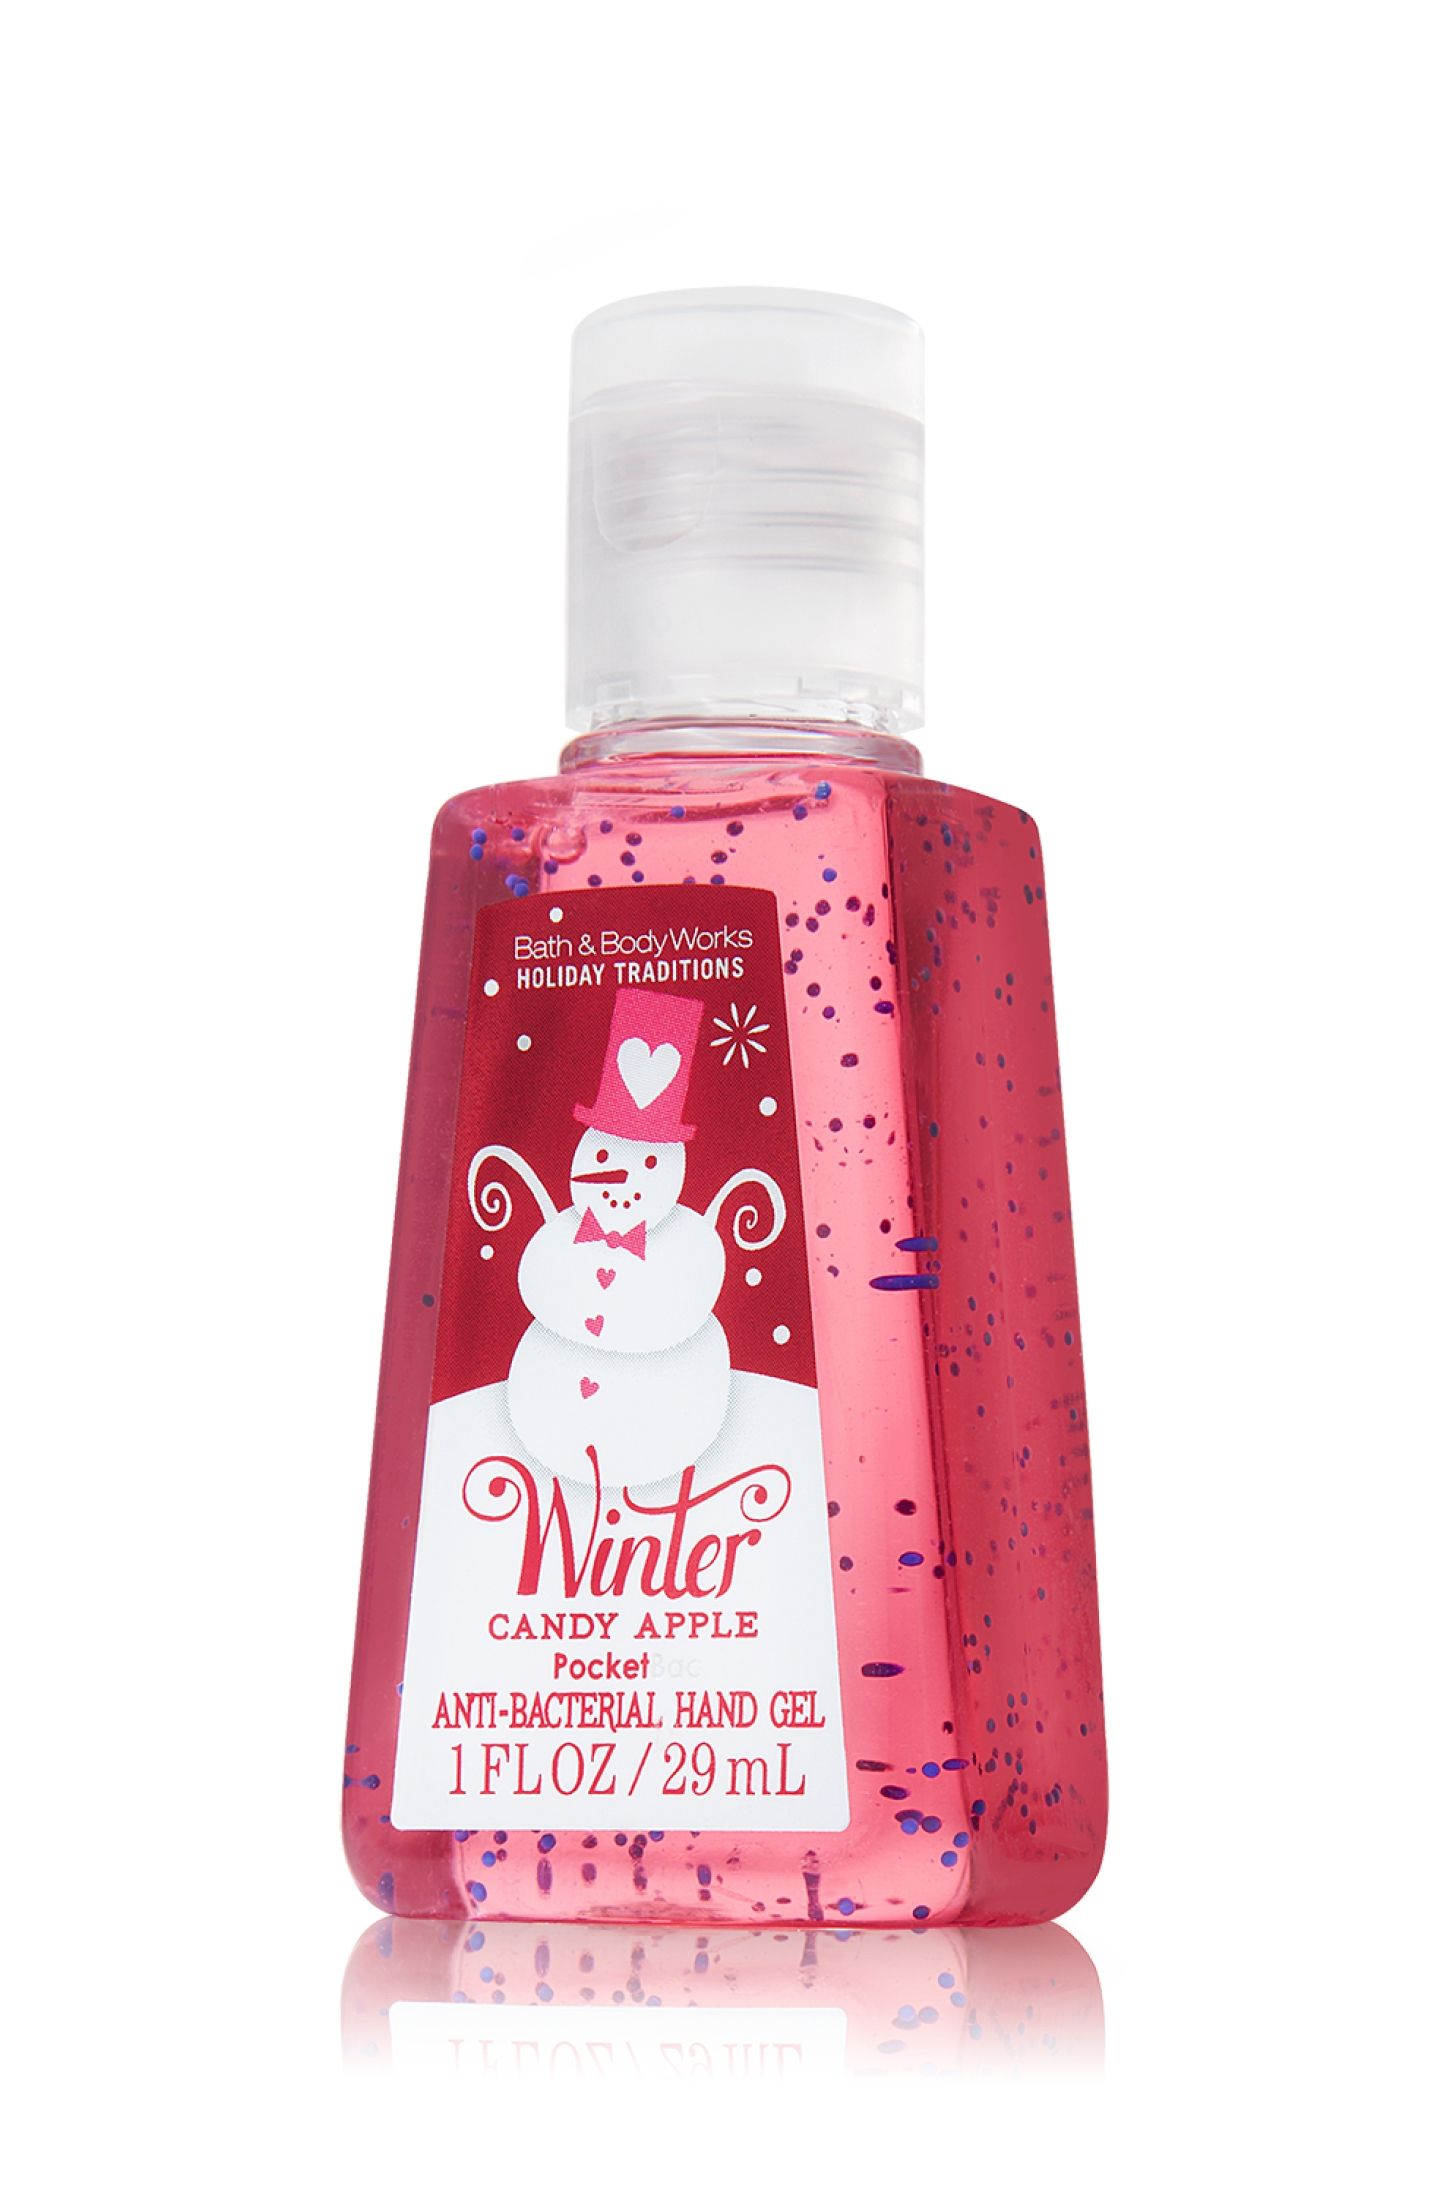 Winter Candy Apple Pocketbac Sanitizing Hand Gel Anti Bacterial